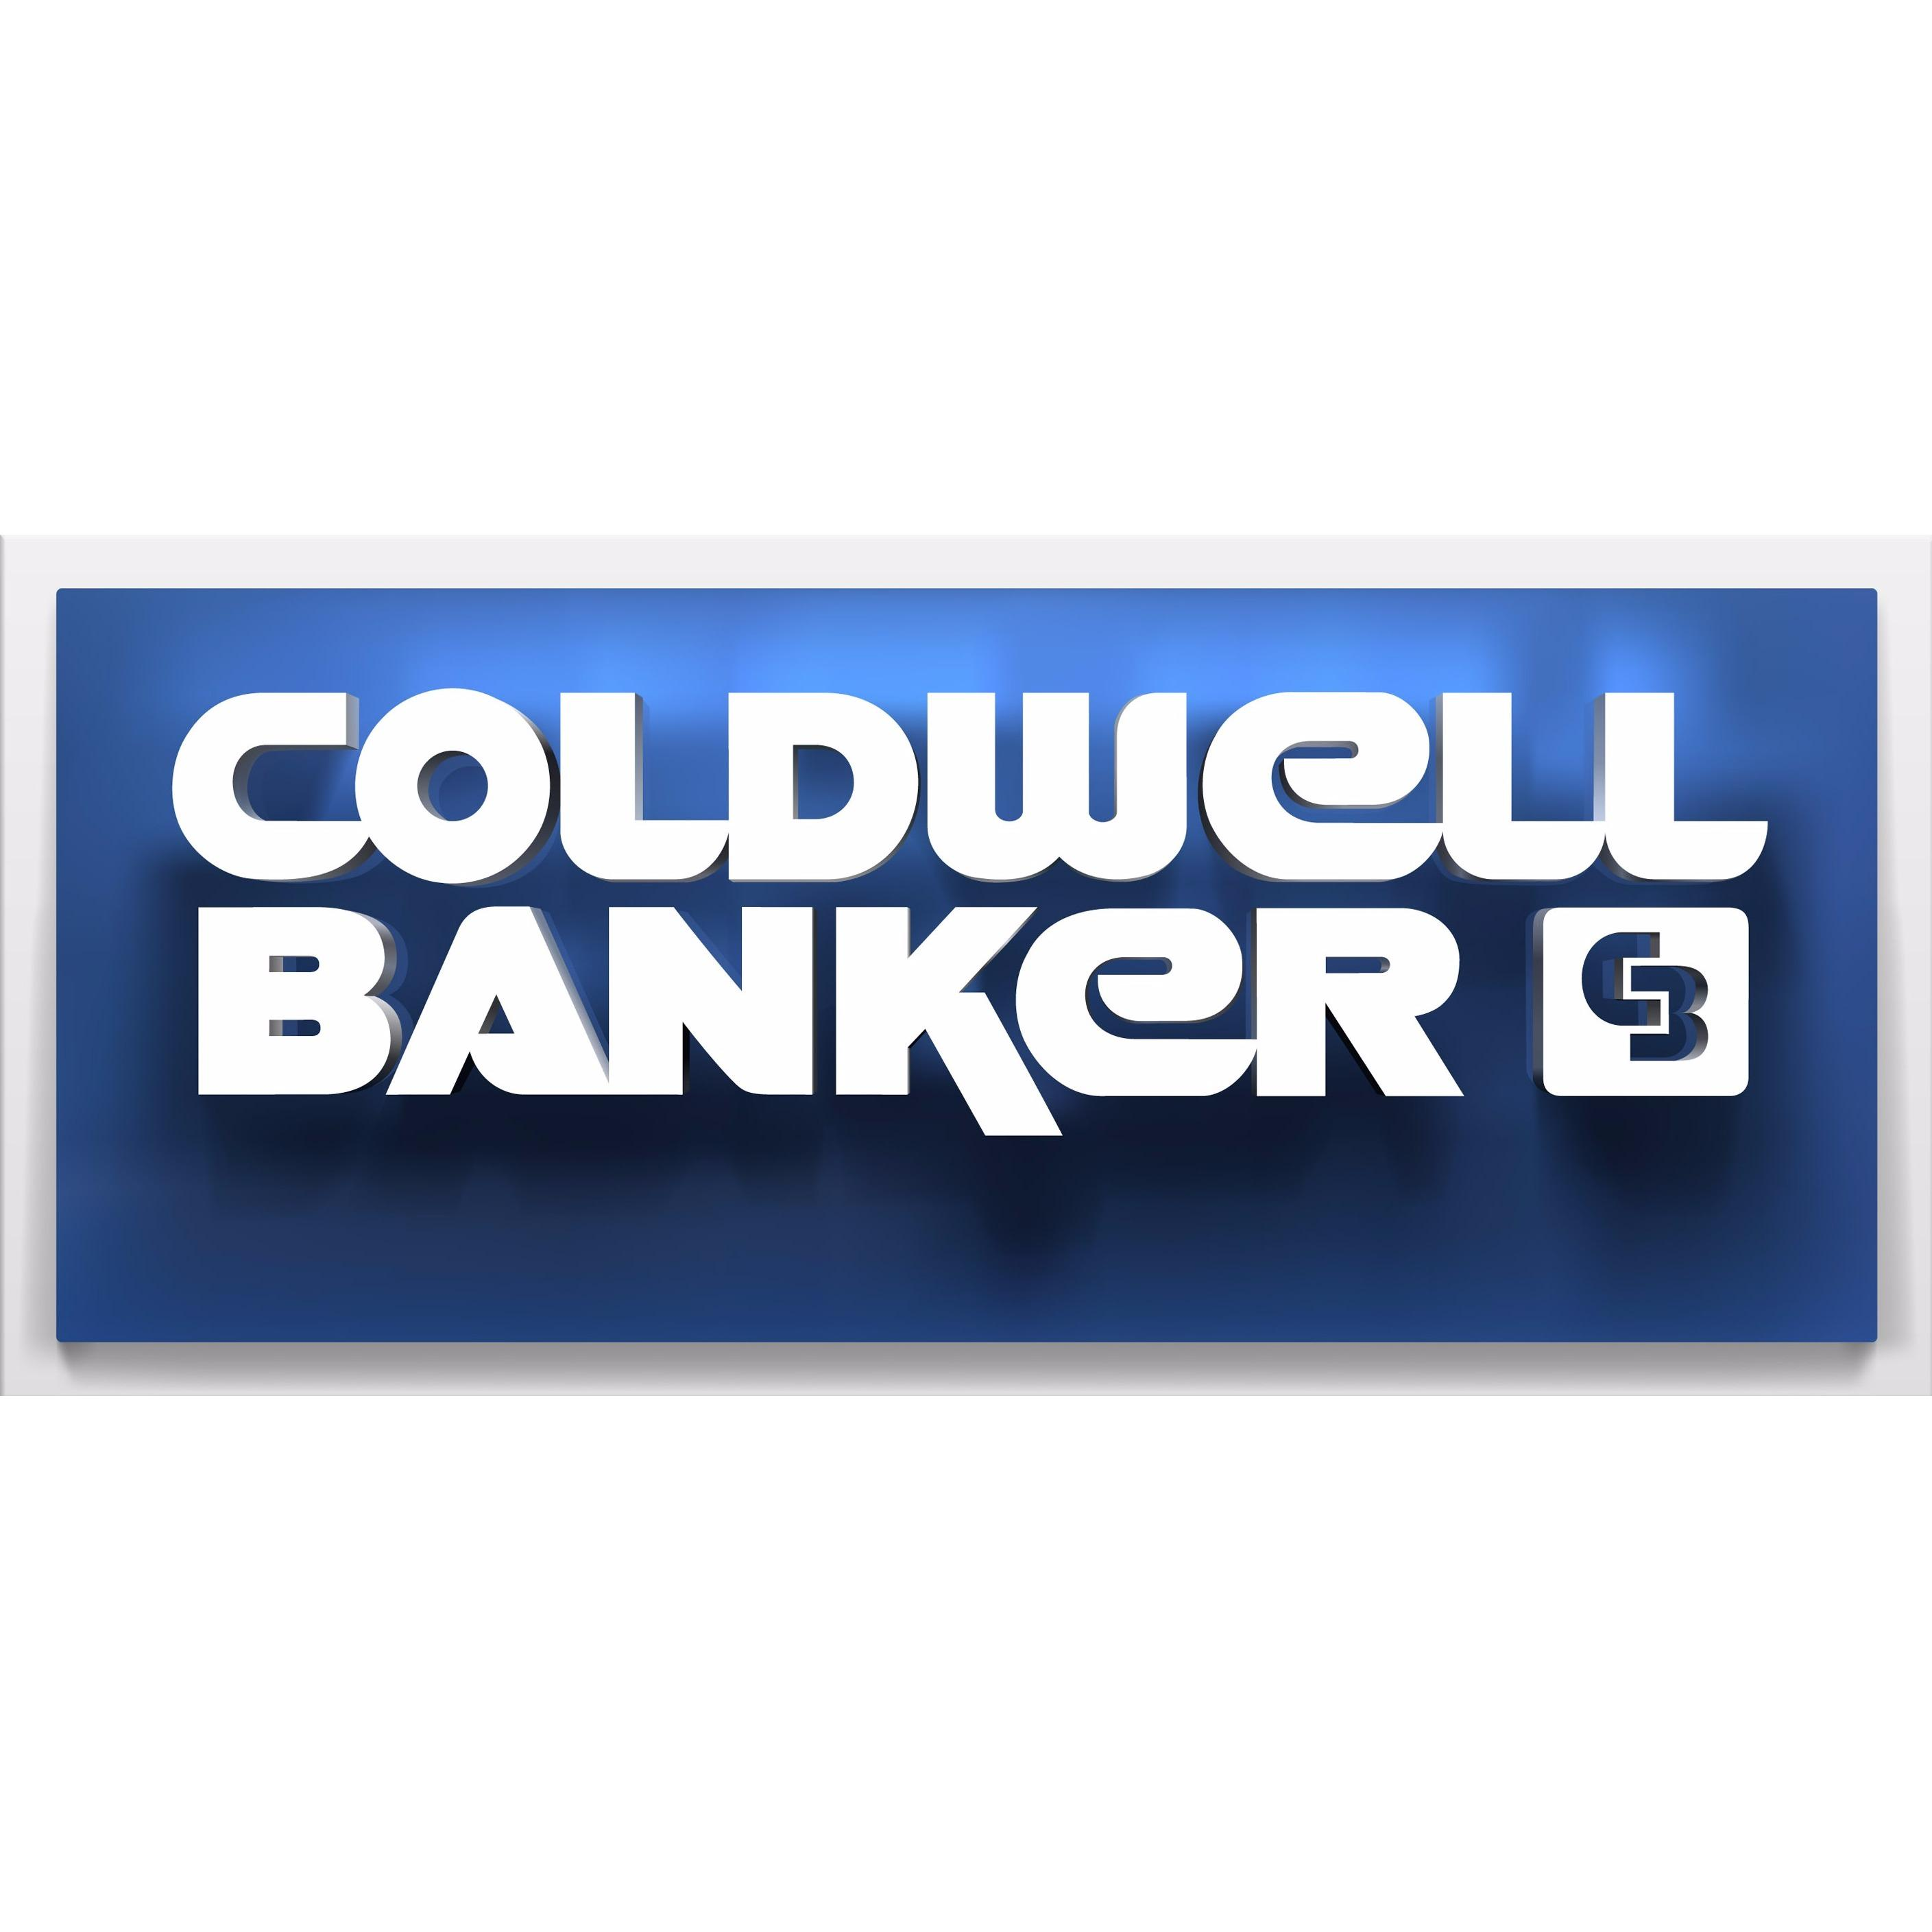 Alice Downie, Coldwell Banker Residential